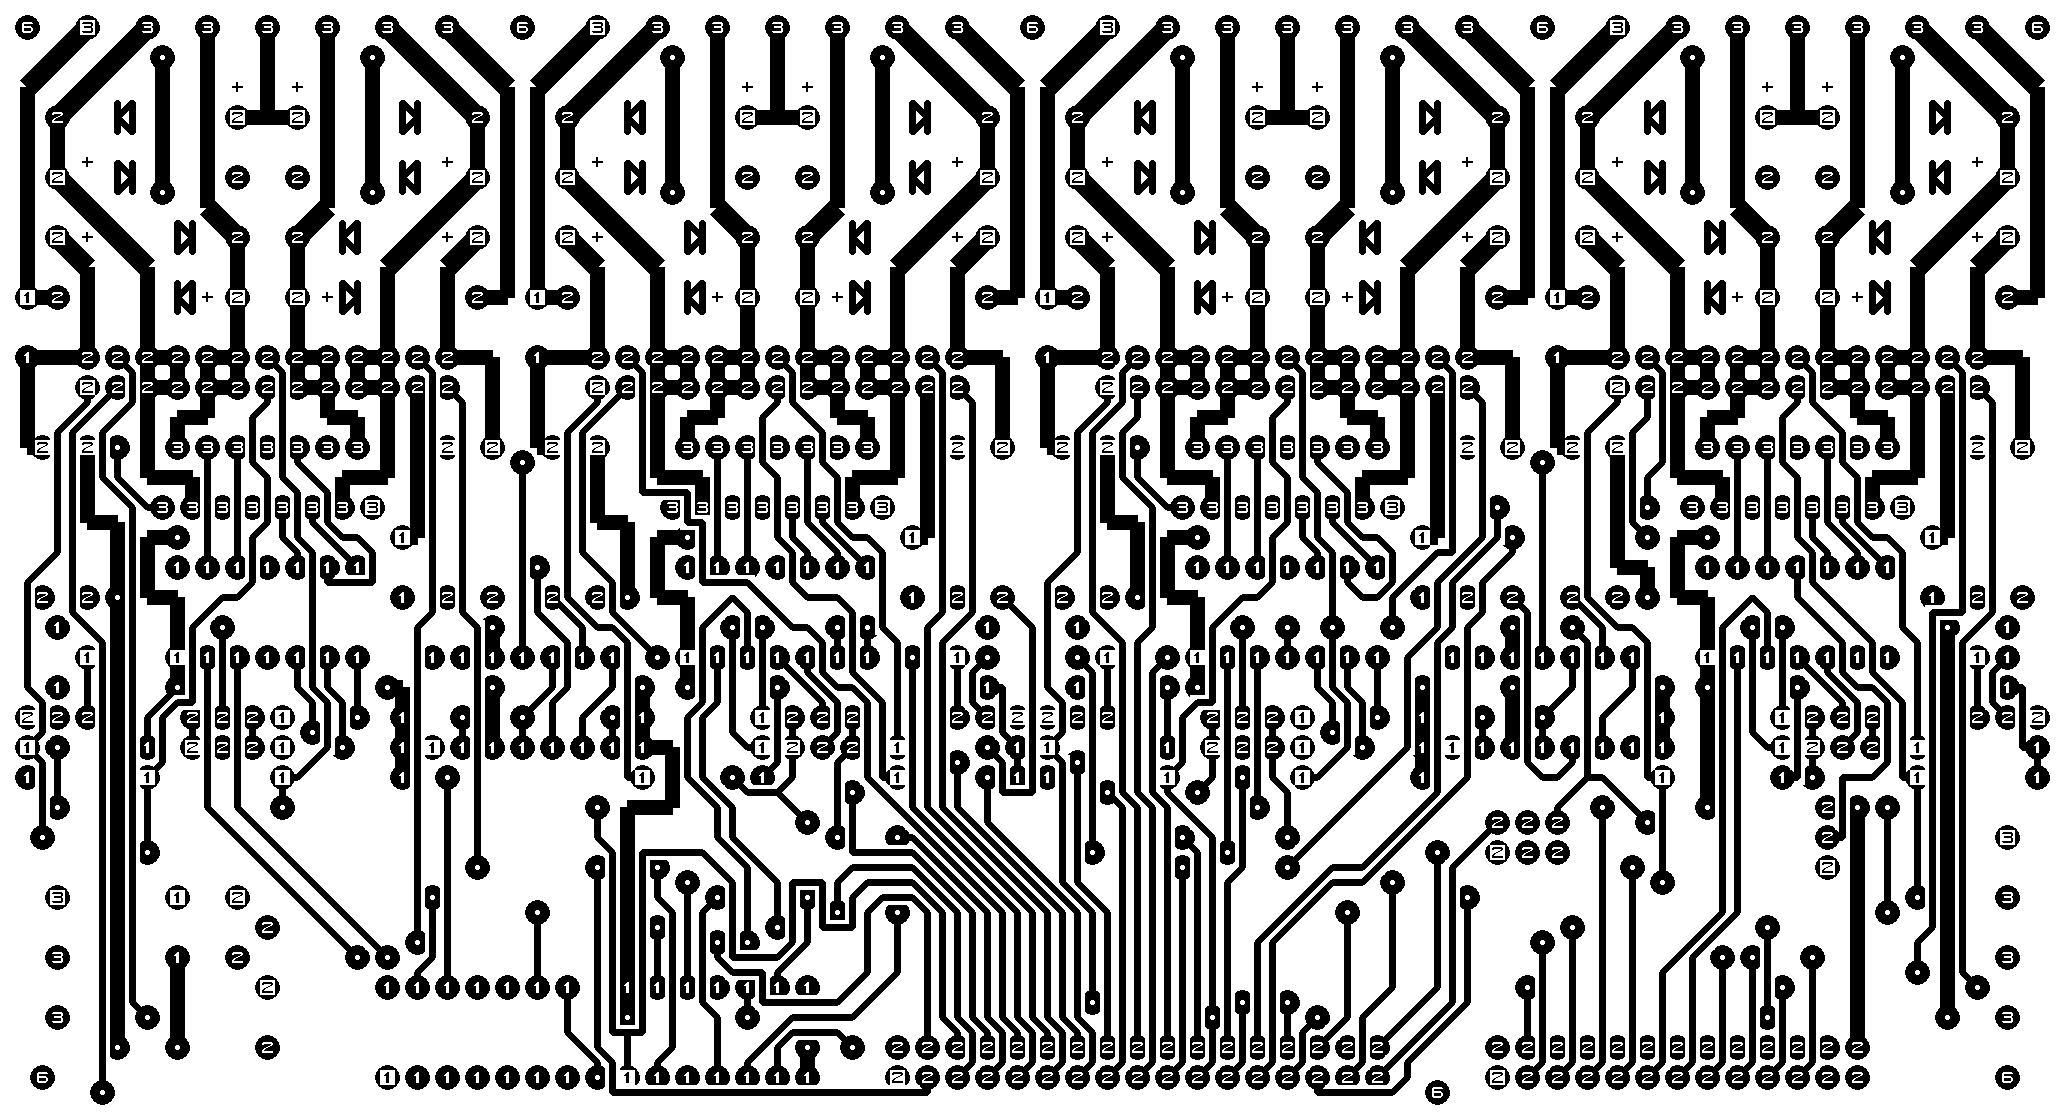 printed circuit board issues pdf